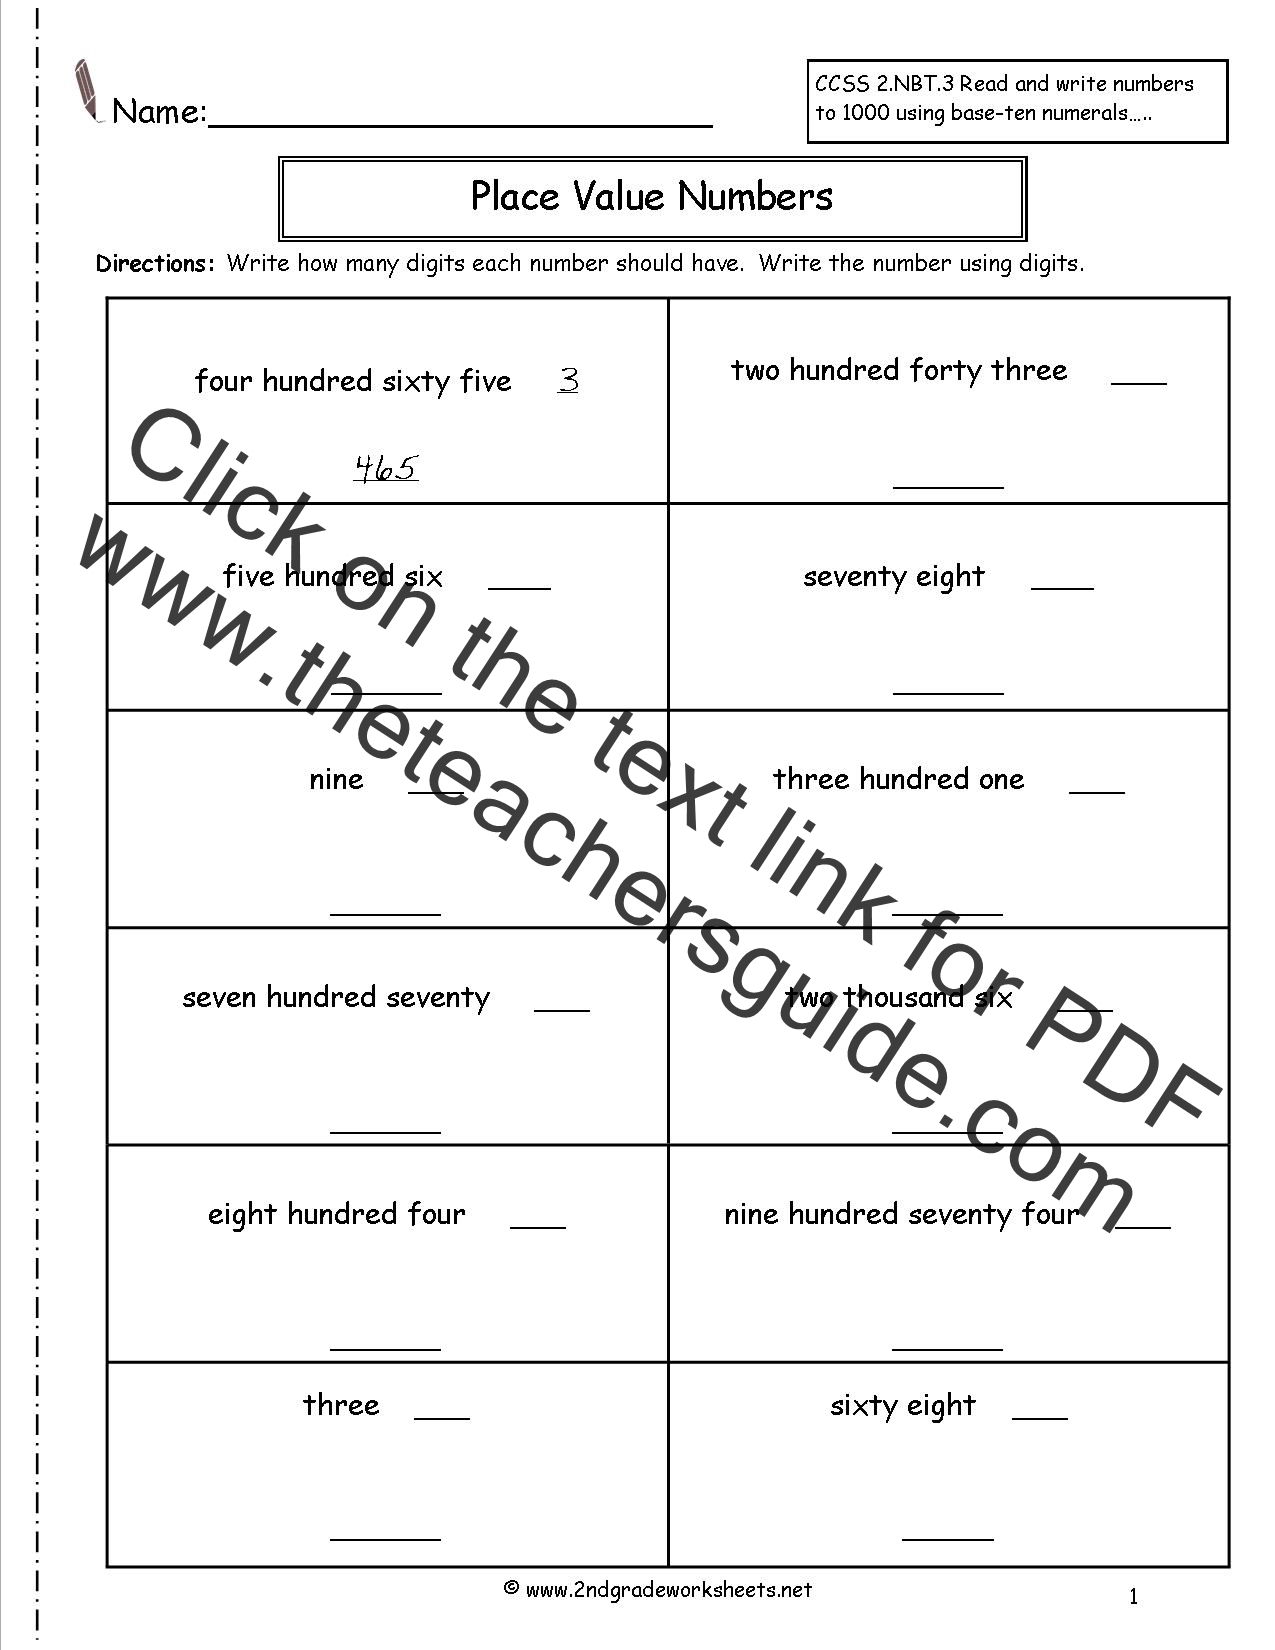 Second Grade Place Value Worksheets – Place Value Blocks Worksheets